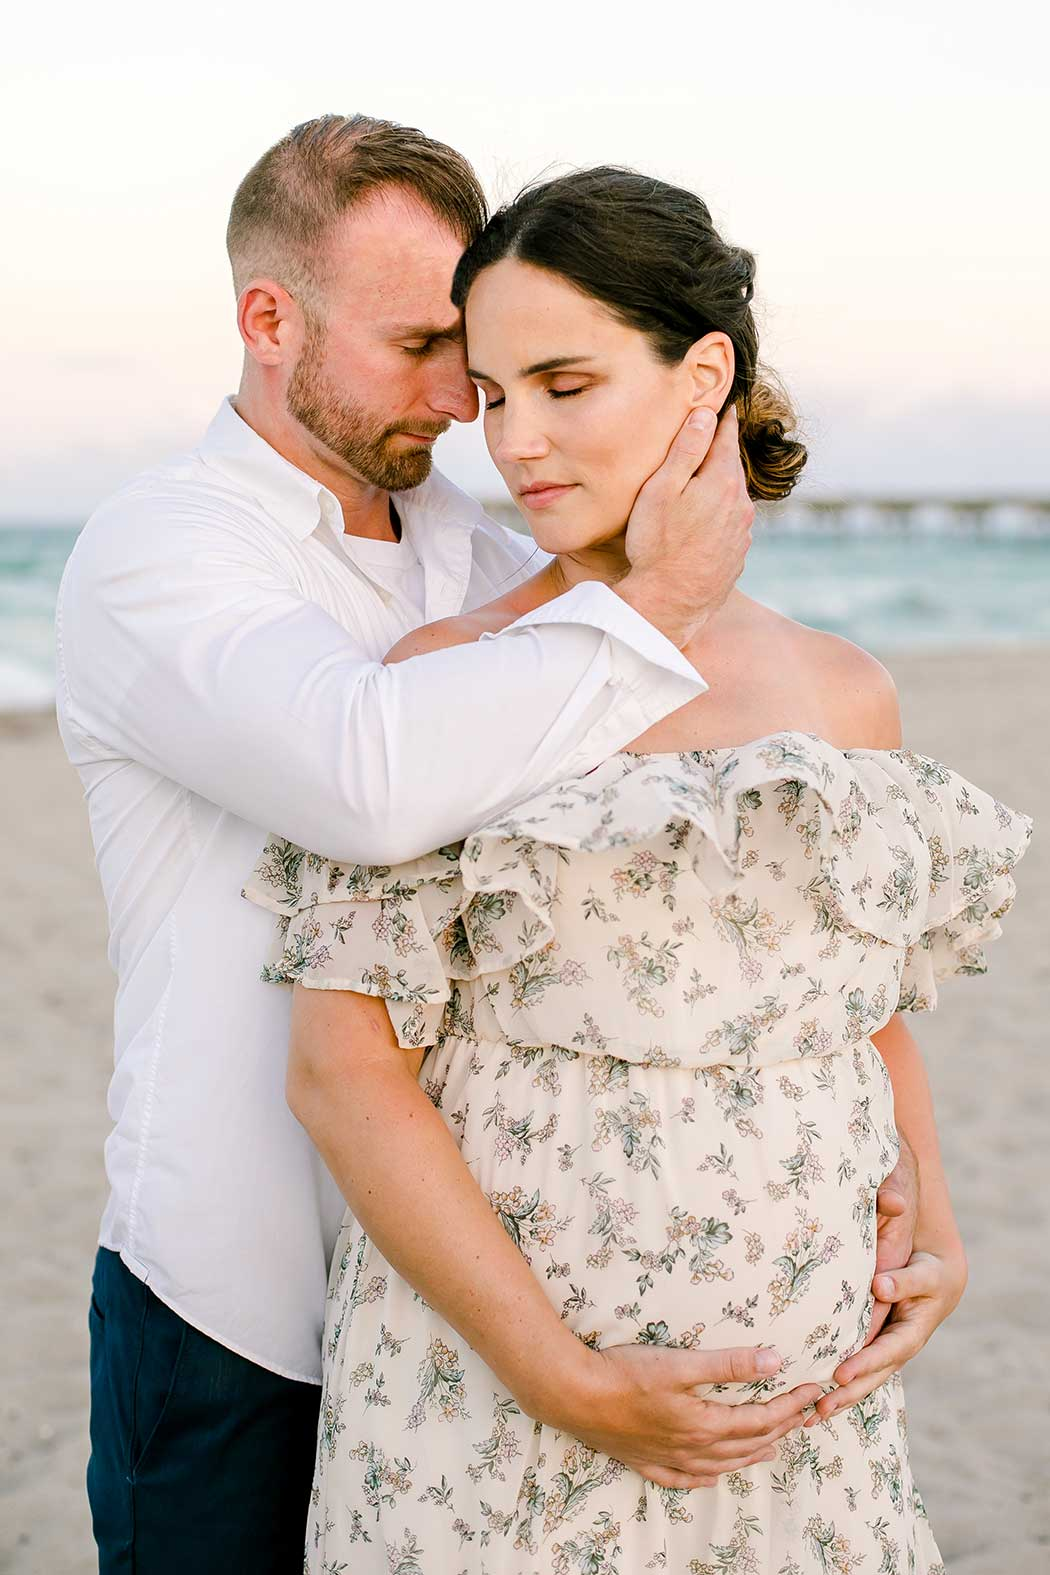 husband and wife maternity pose idea | romantic pose for maternity photography with two people | husband and wife maternity photoshoot on dania beach